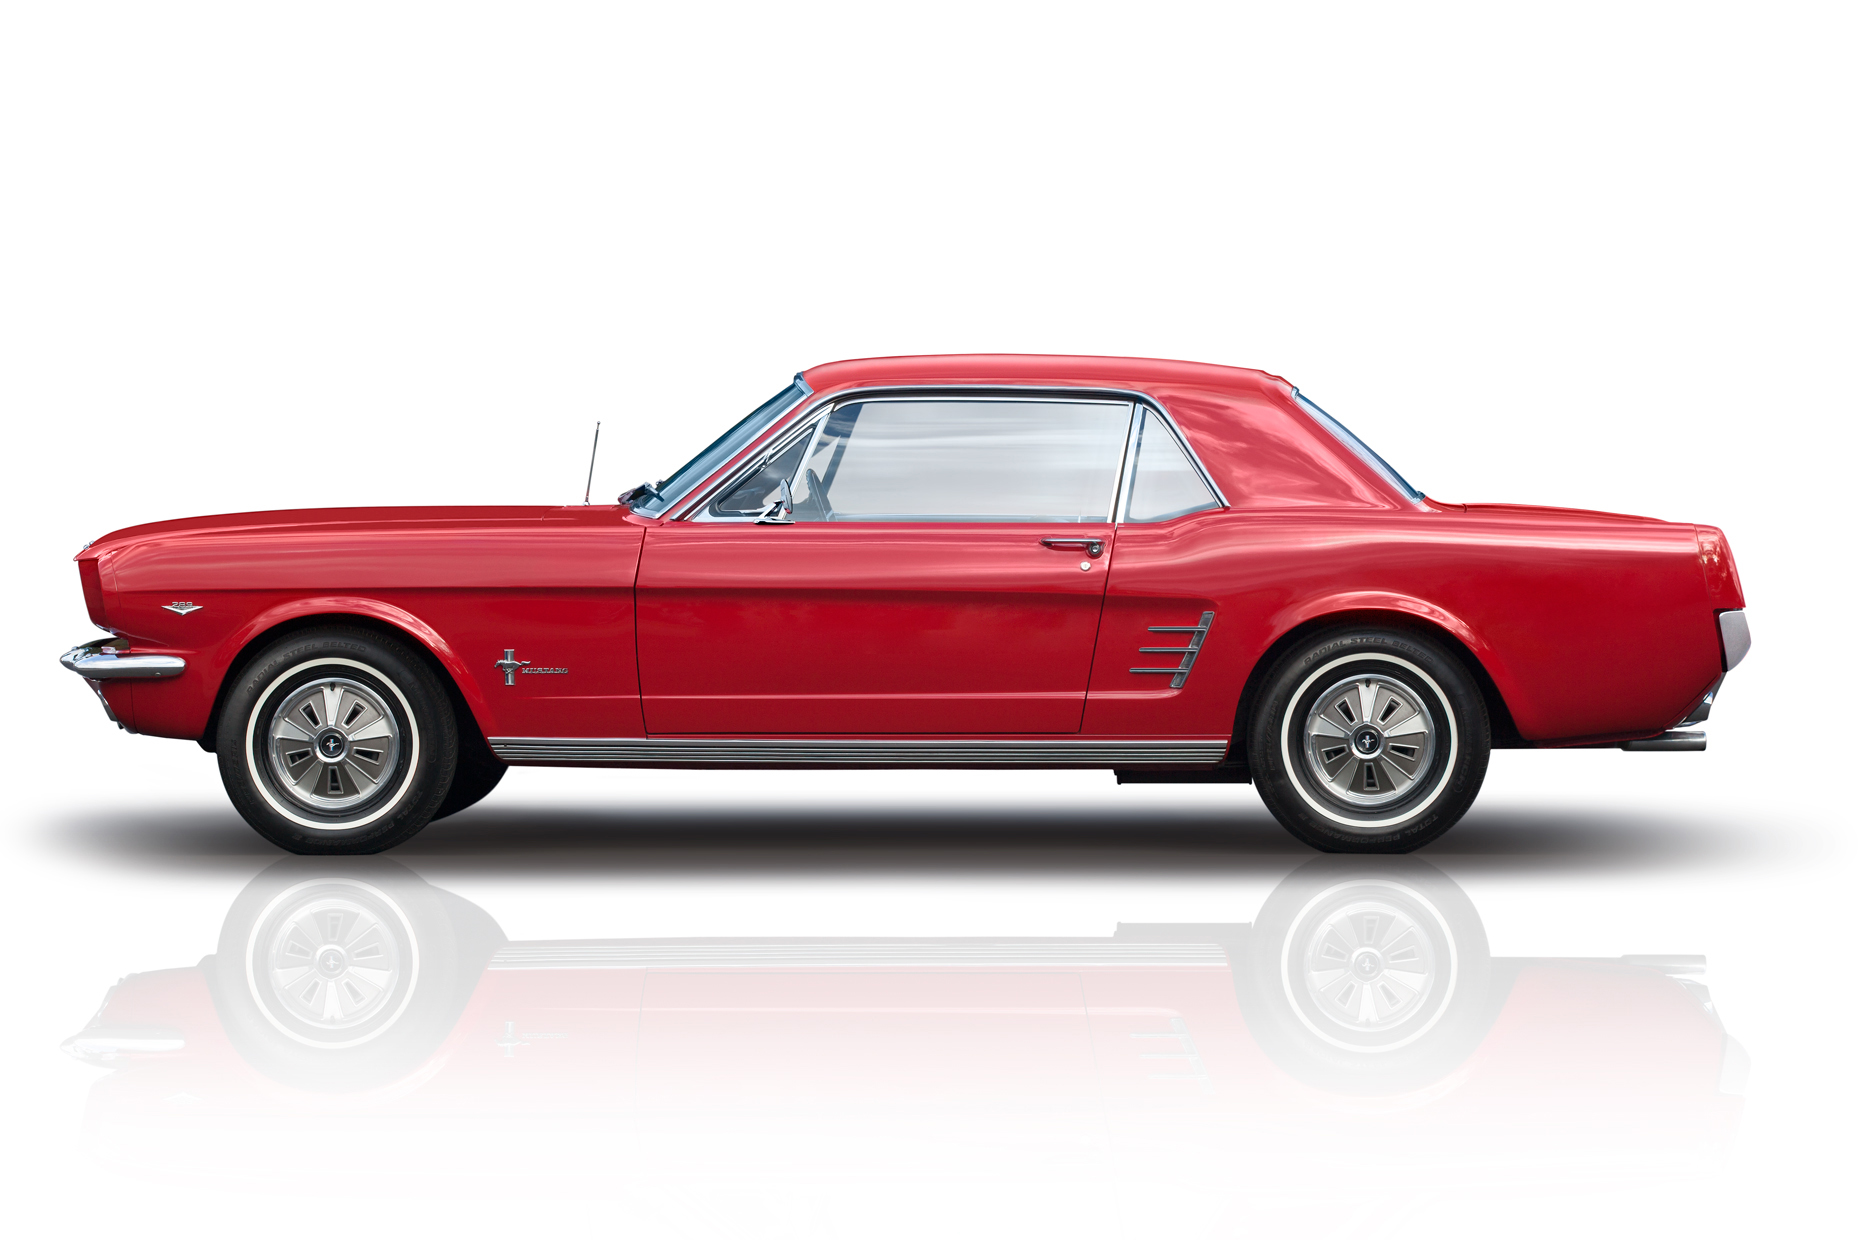 MCraft_LeMay_65Mustang_SideView-DUP.jpg